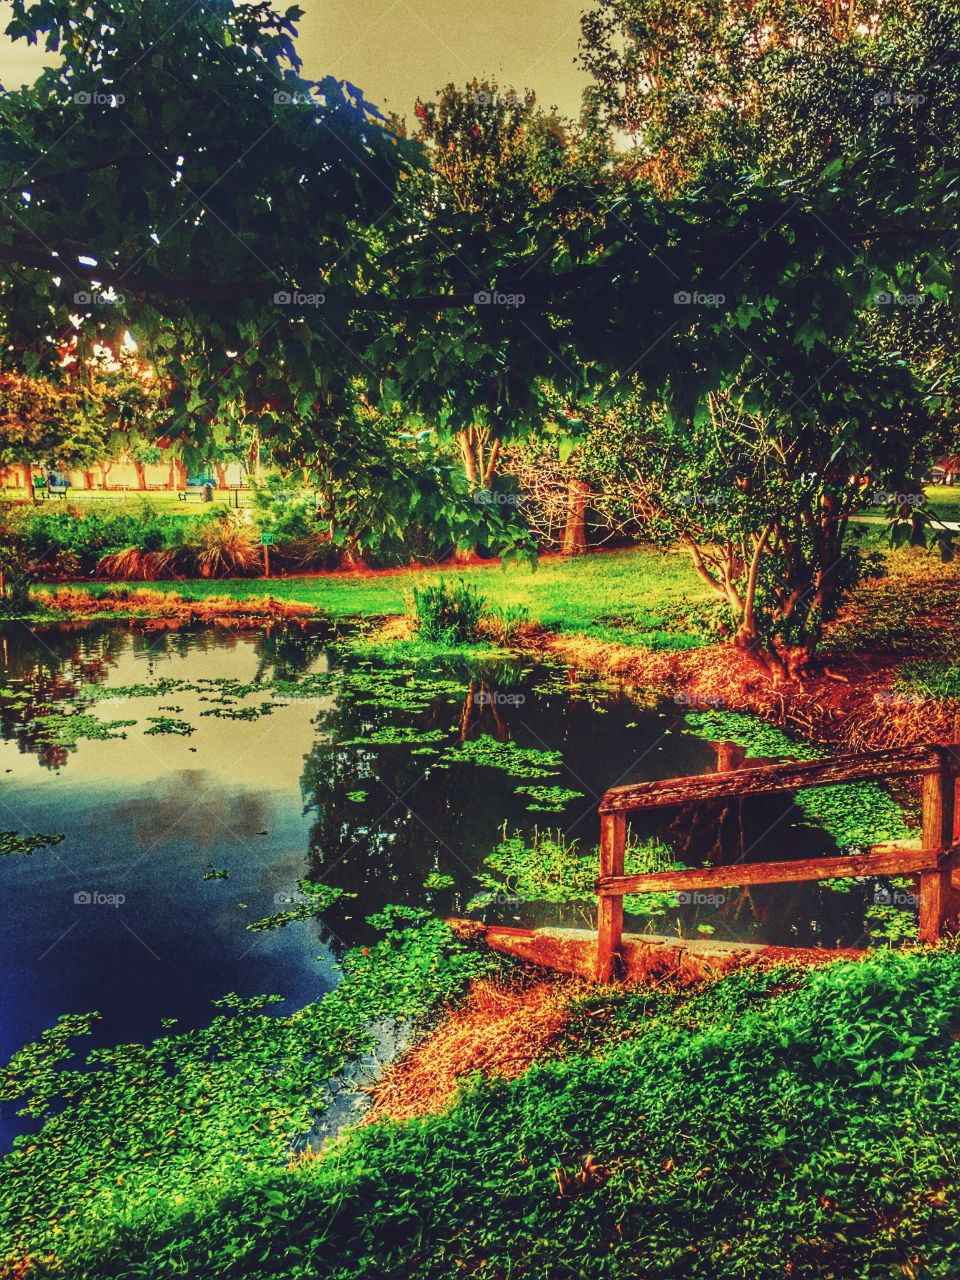 Pond at sunset in the park in St Petersburg FL